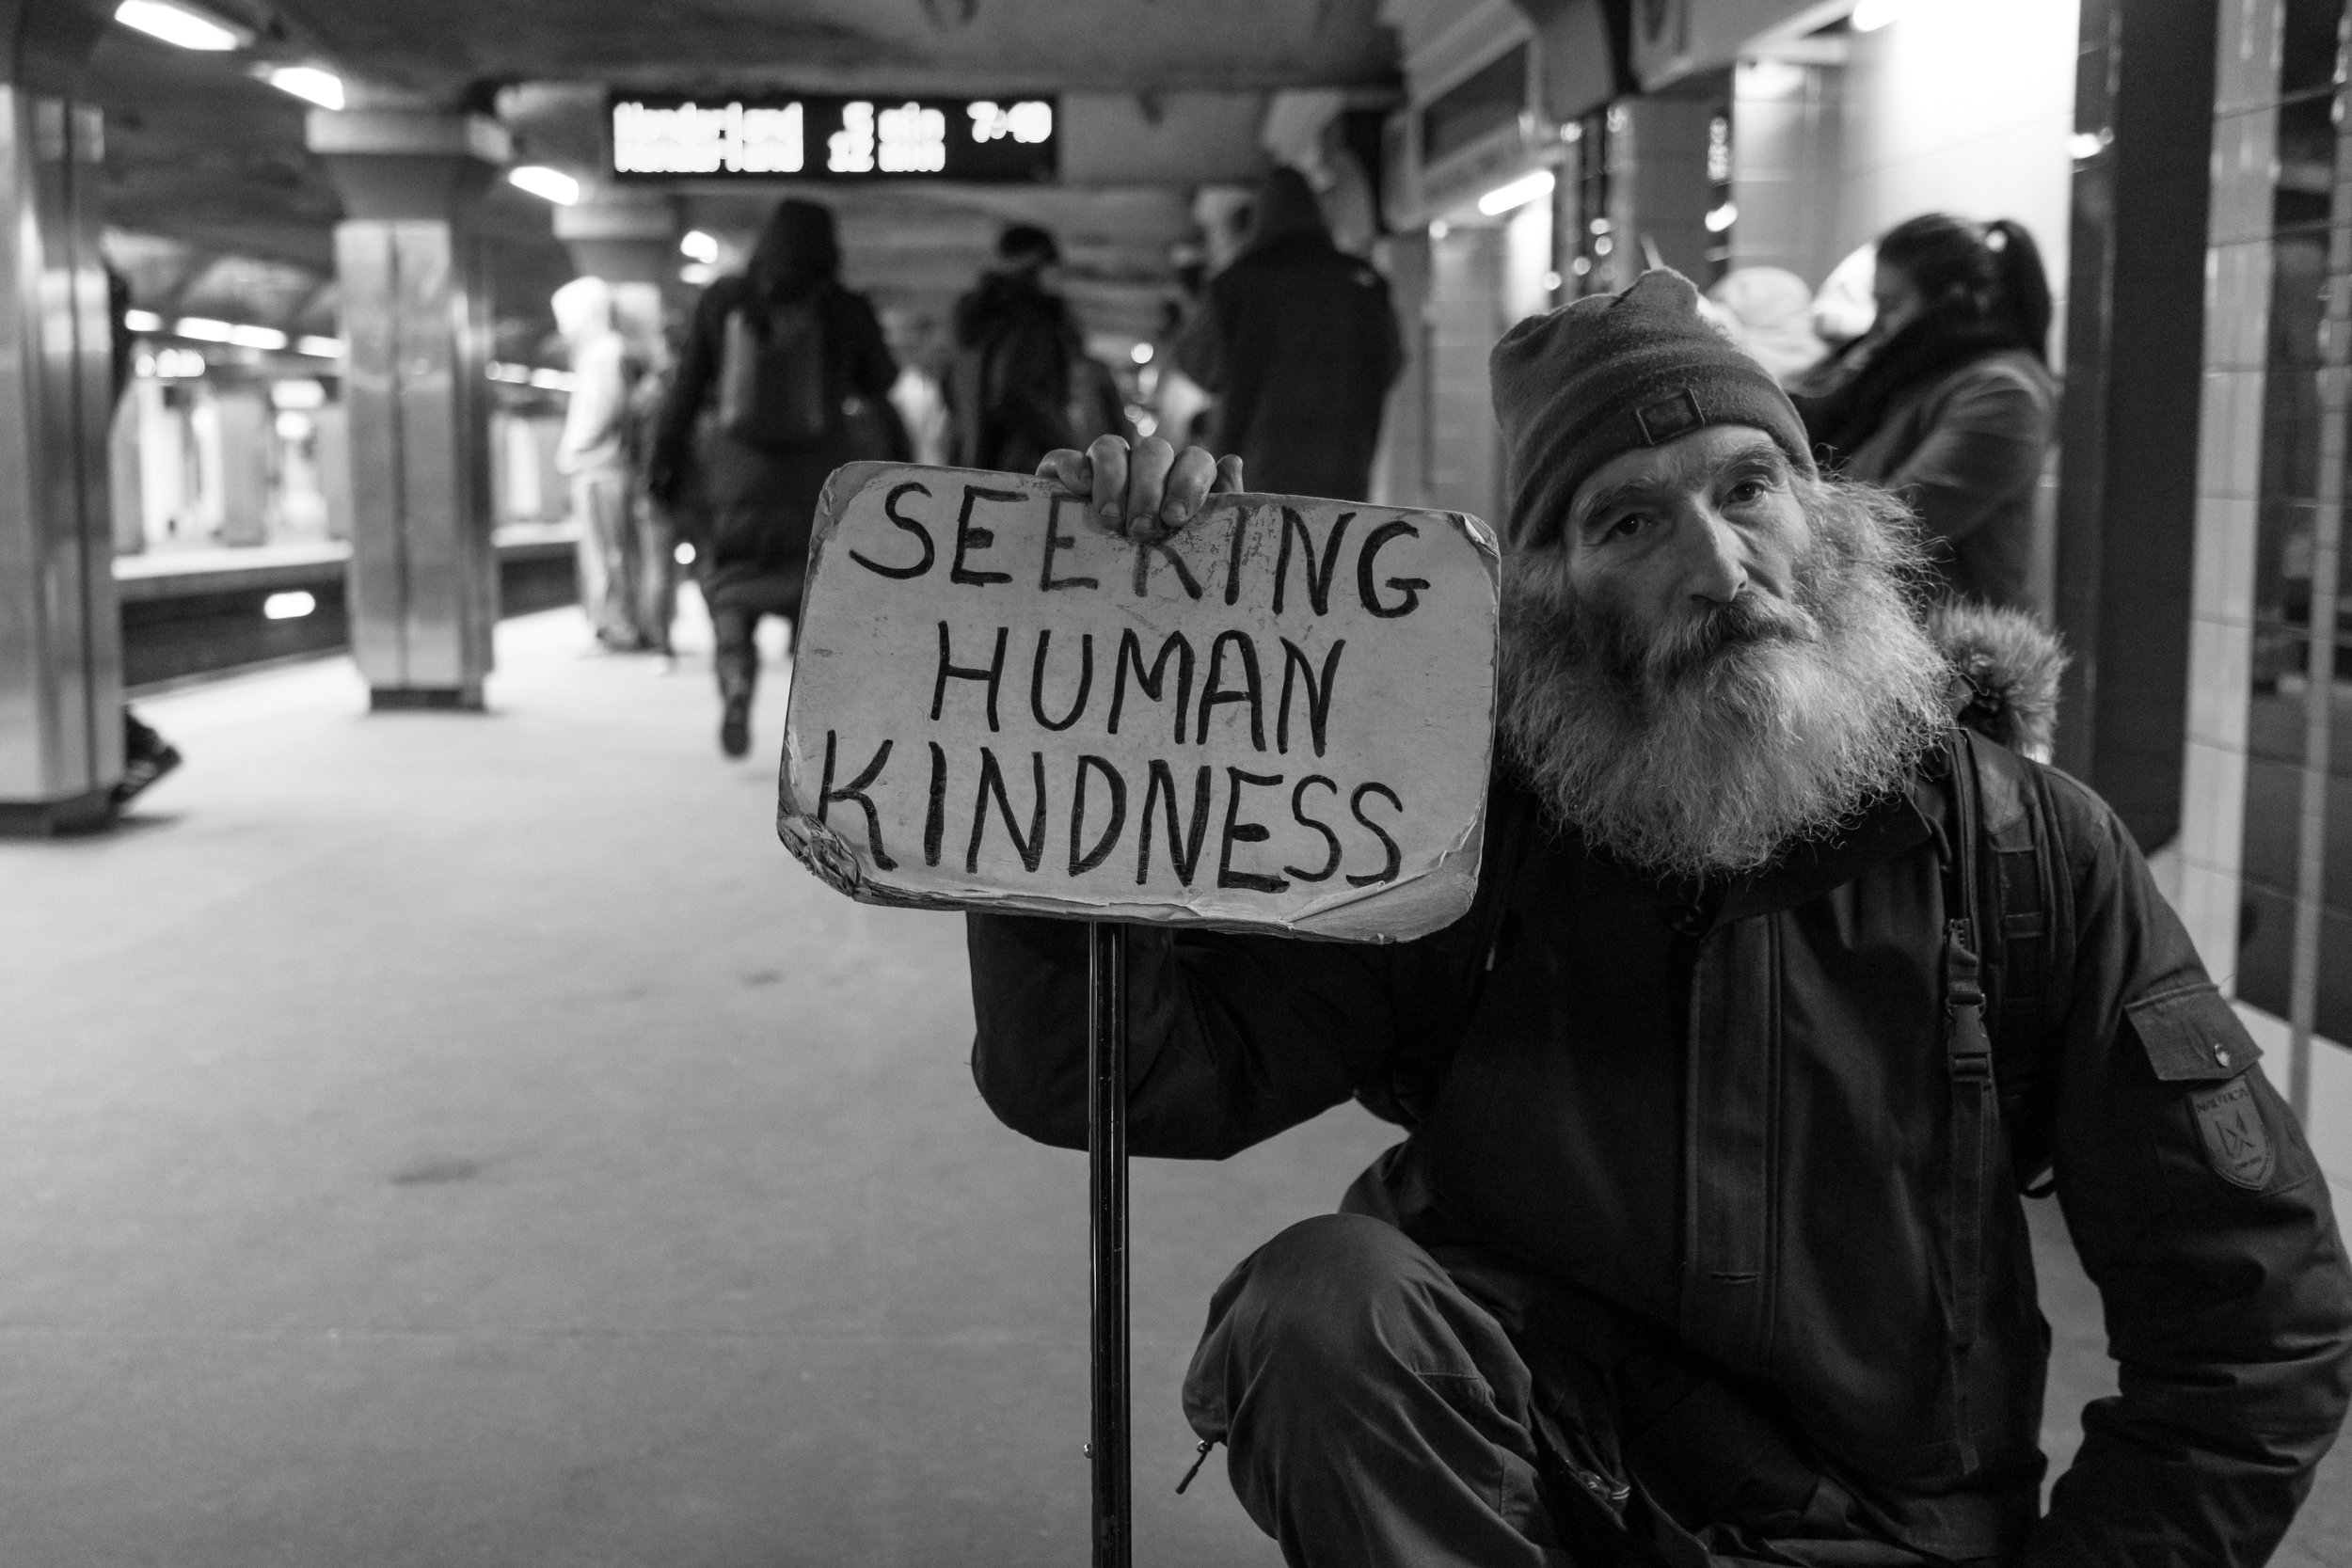 When you see homeless people, are you disgusted or are you moved by pity?